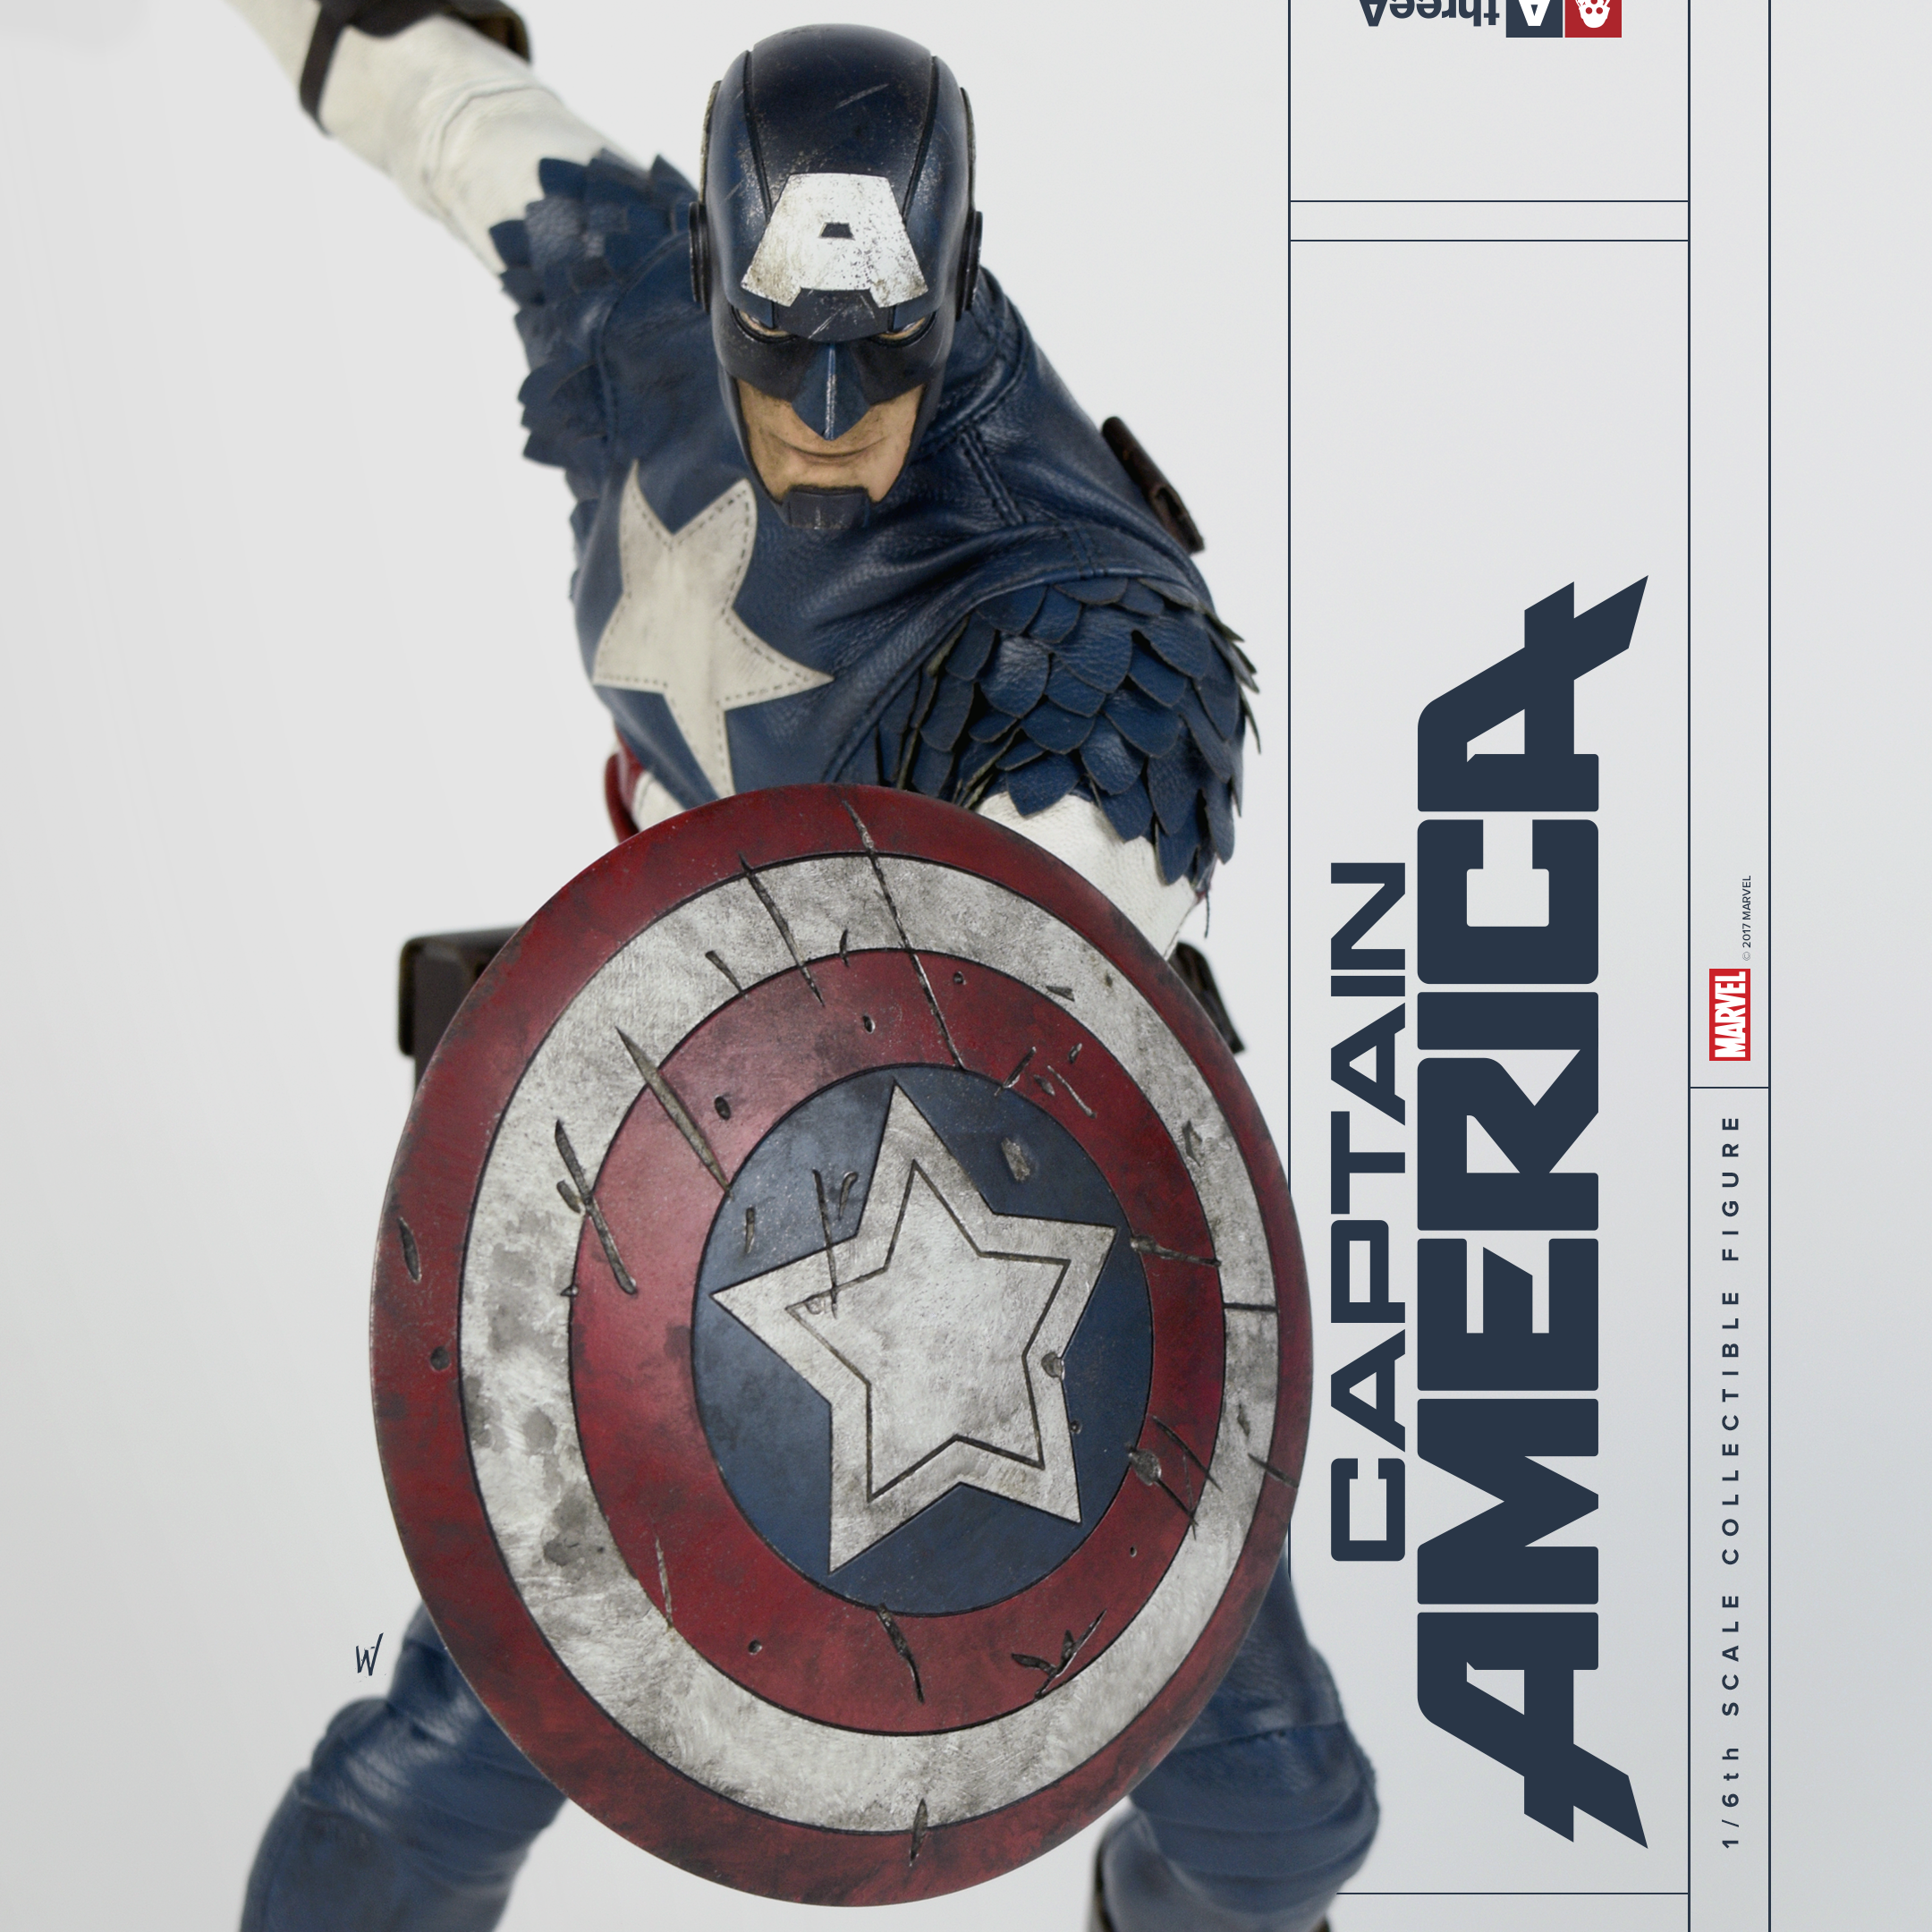 3A_Marvel_CaptainAmerica_Square_Ad_005b.png